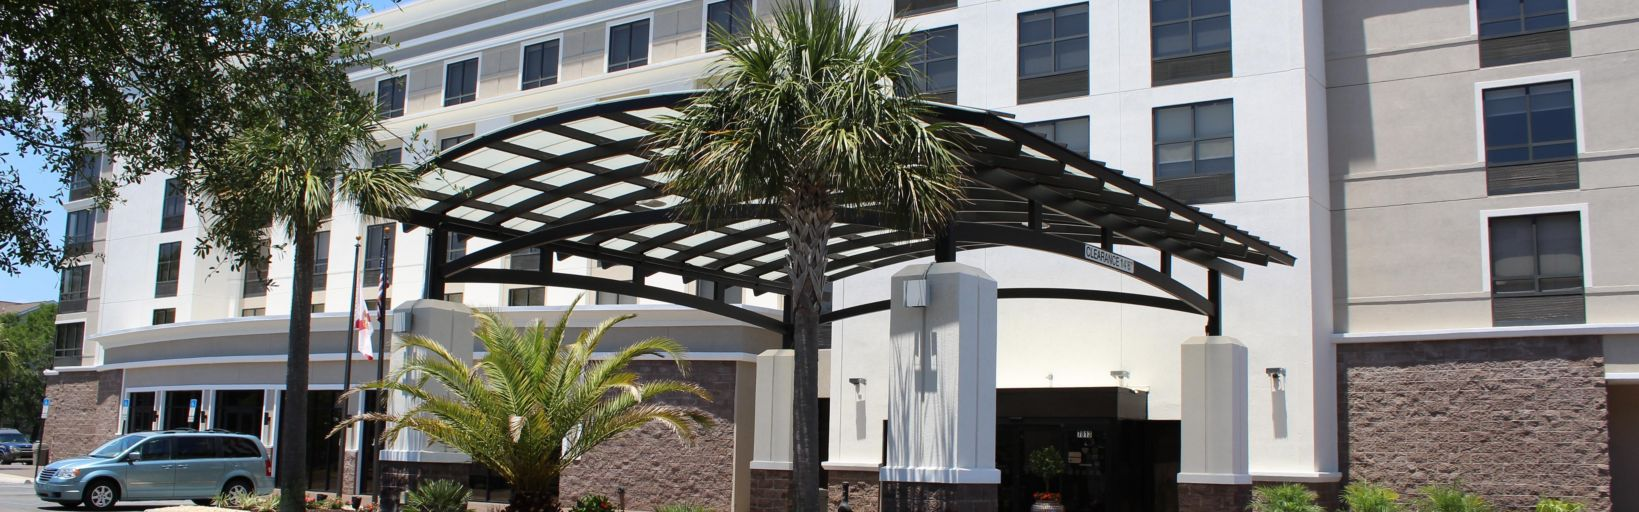 Pensacola Florida Hotel Holiday Inn Pensacola University Hotel